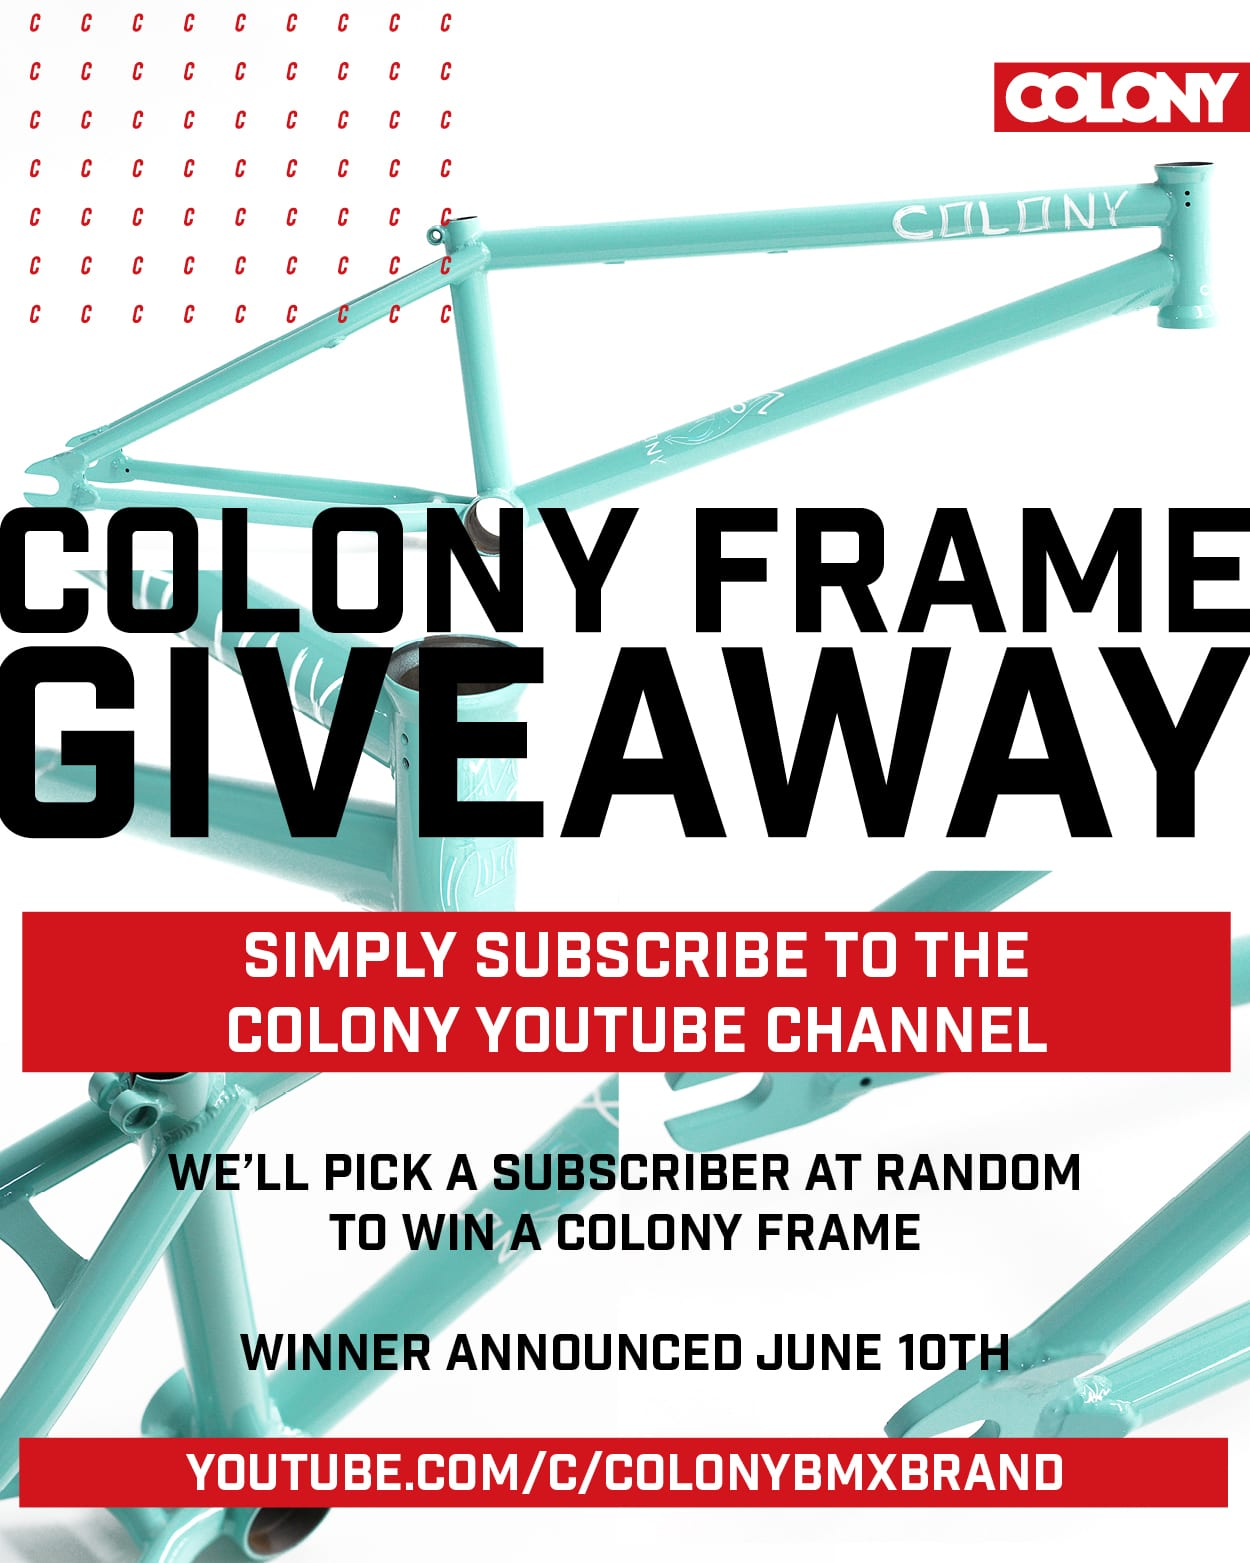 colony bmx frame giveaway